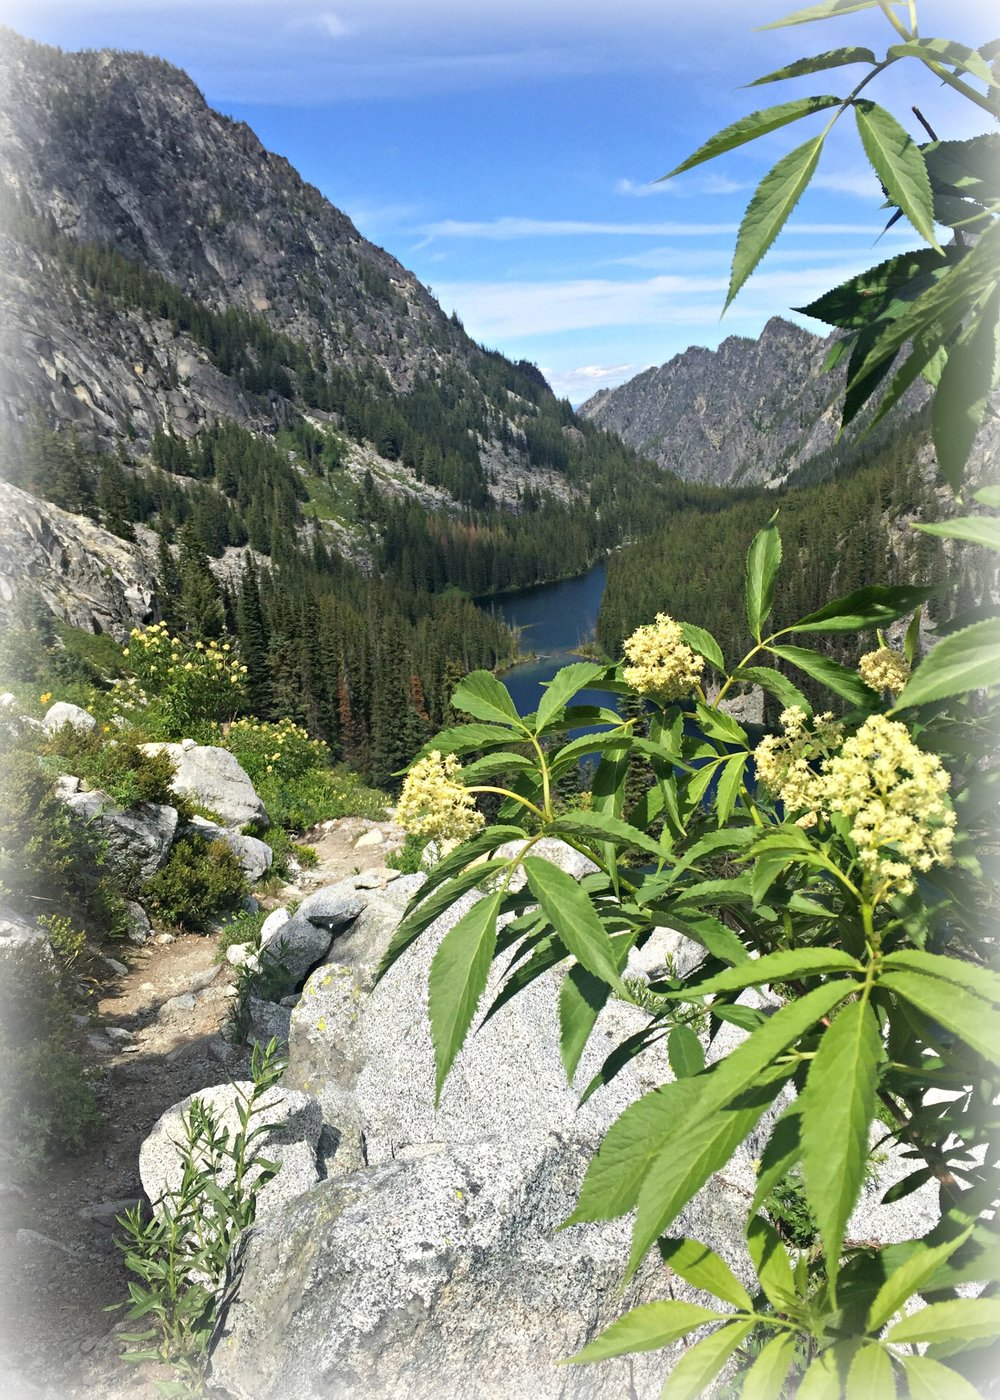 Washington's Alpine Lakes Wilderness